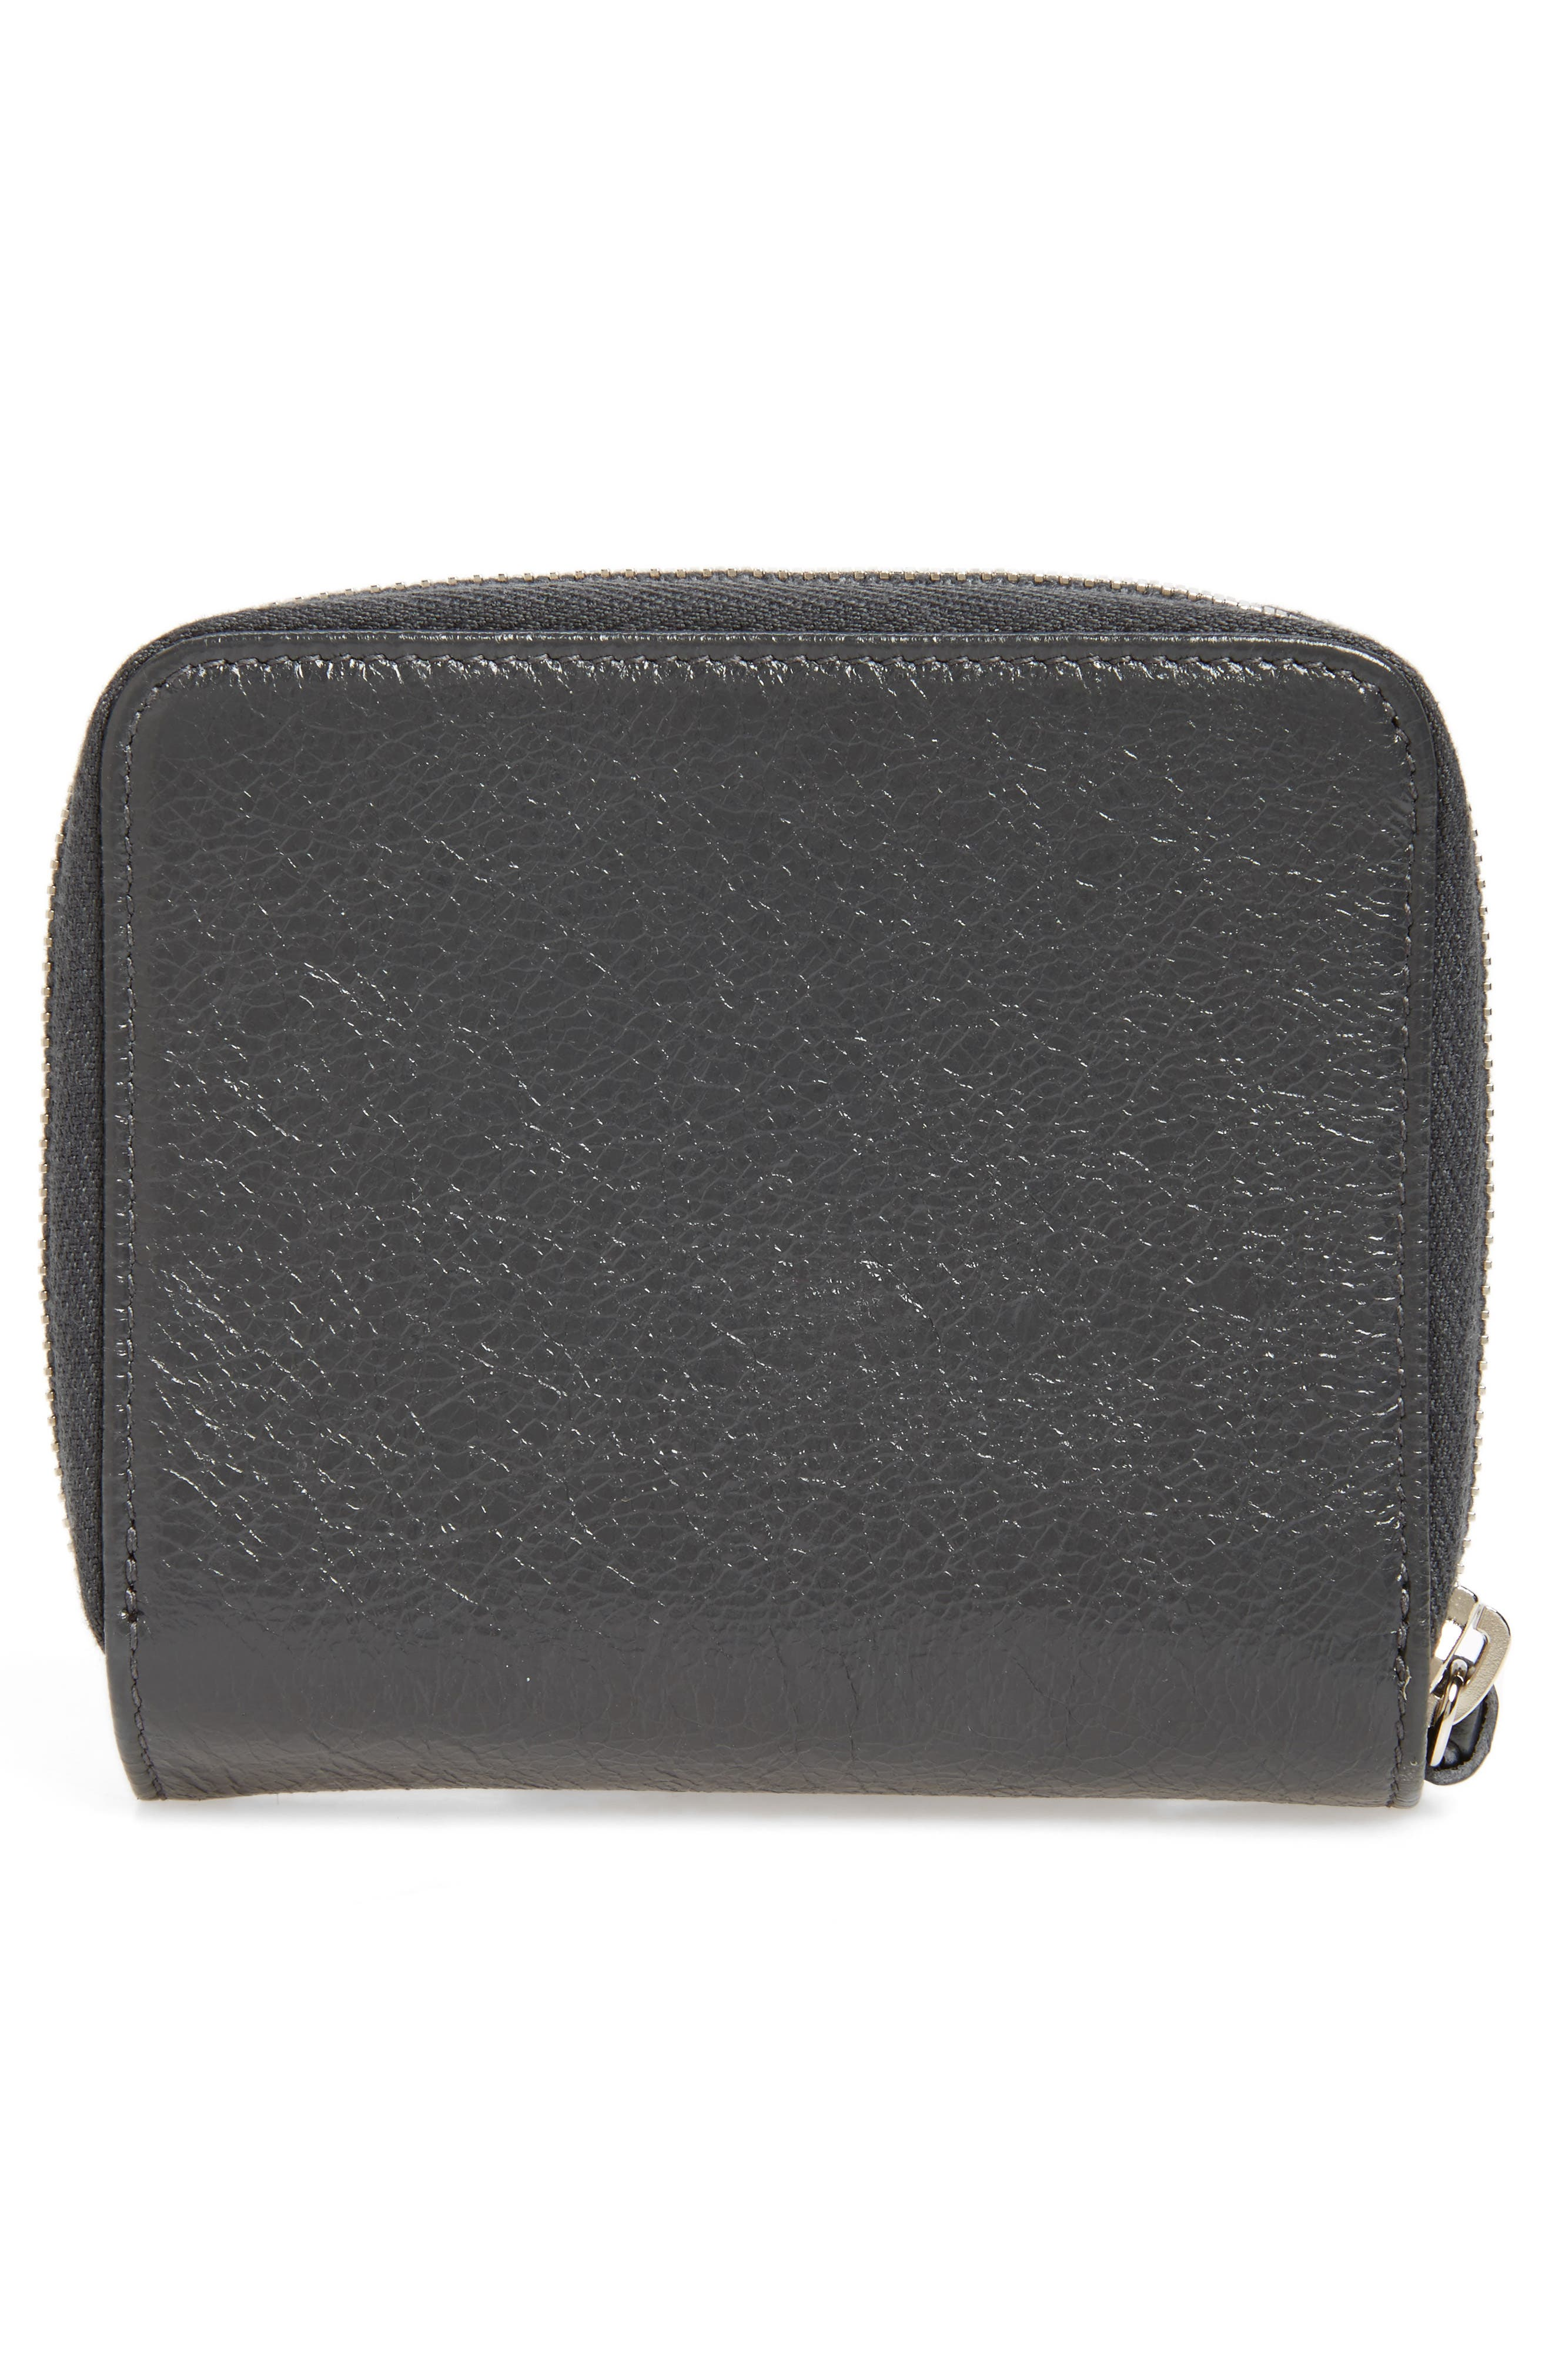 Classic Leather Billfold,                             Alternate thumbnail 4, color,                             1110 Gris Fossile